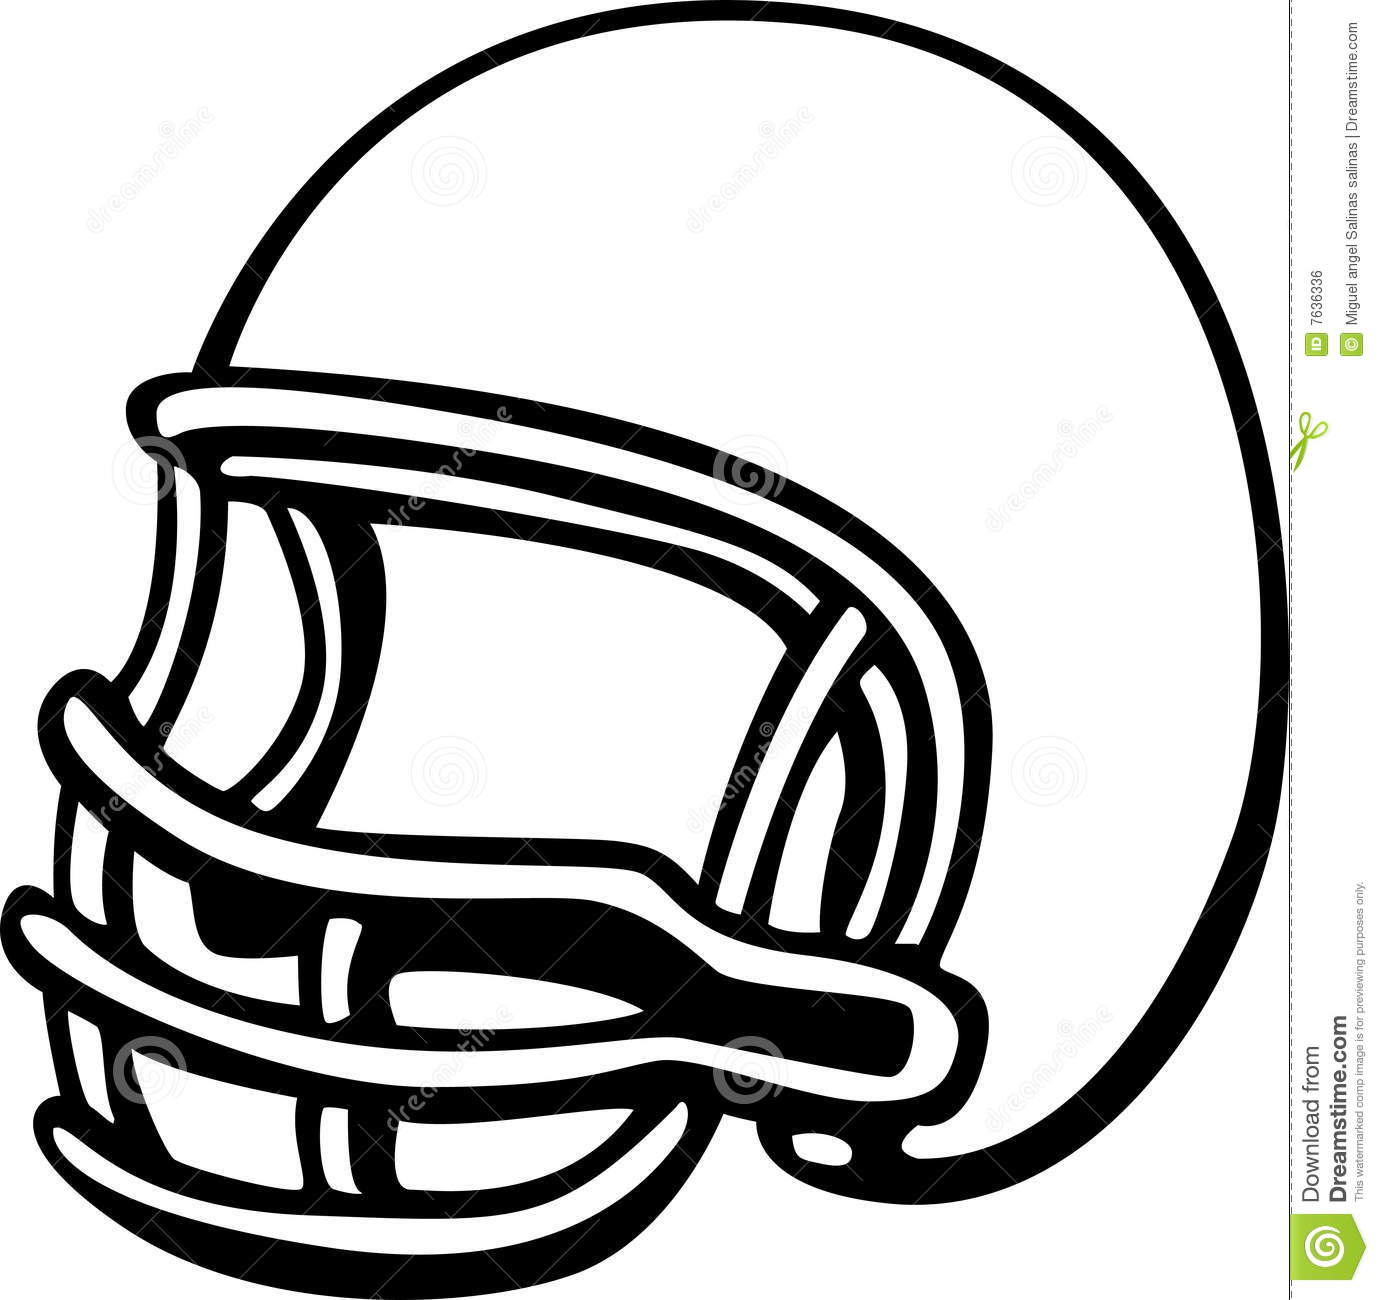 football helmet vector illustration stock vector illustration of rh dreamstime com football helmet clipart front view football helmets clipart free